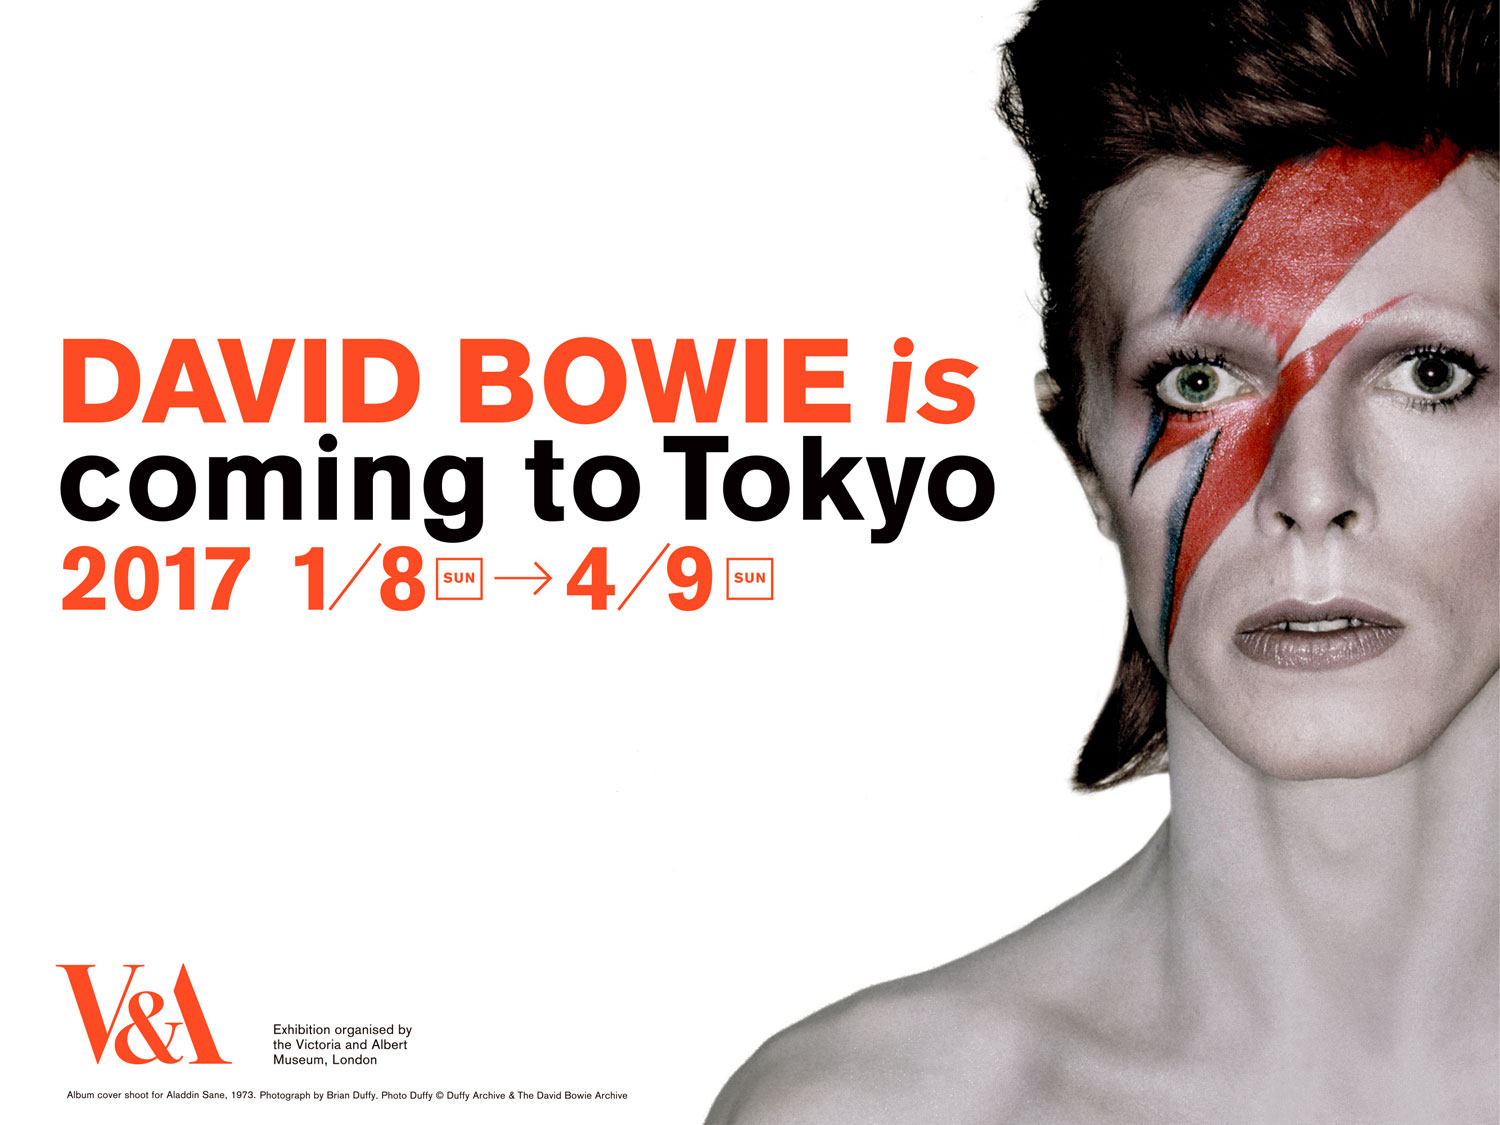 DAVID BOWIE is デヴィッド・ボウイ大回顧展